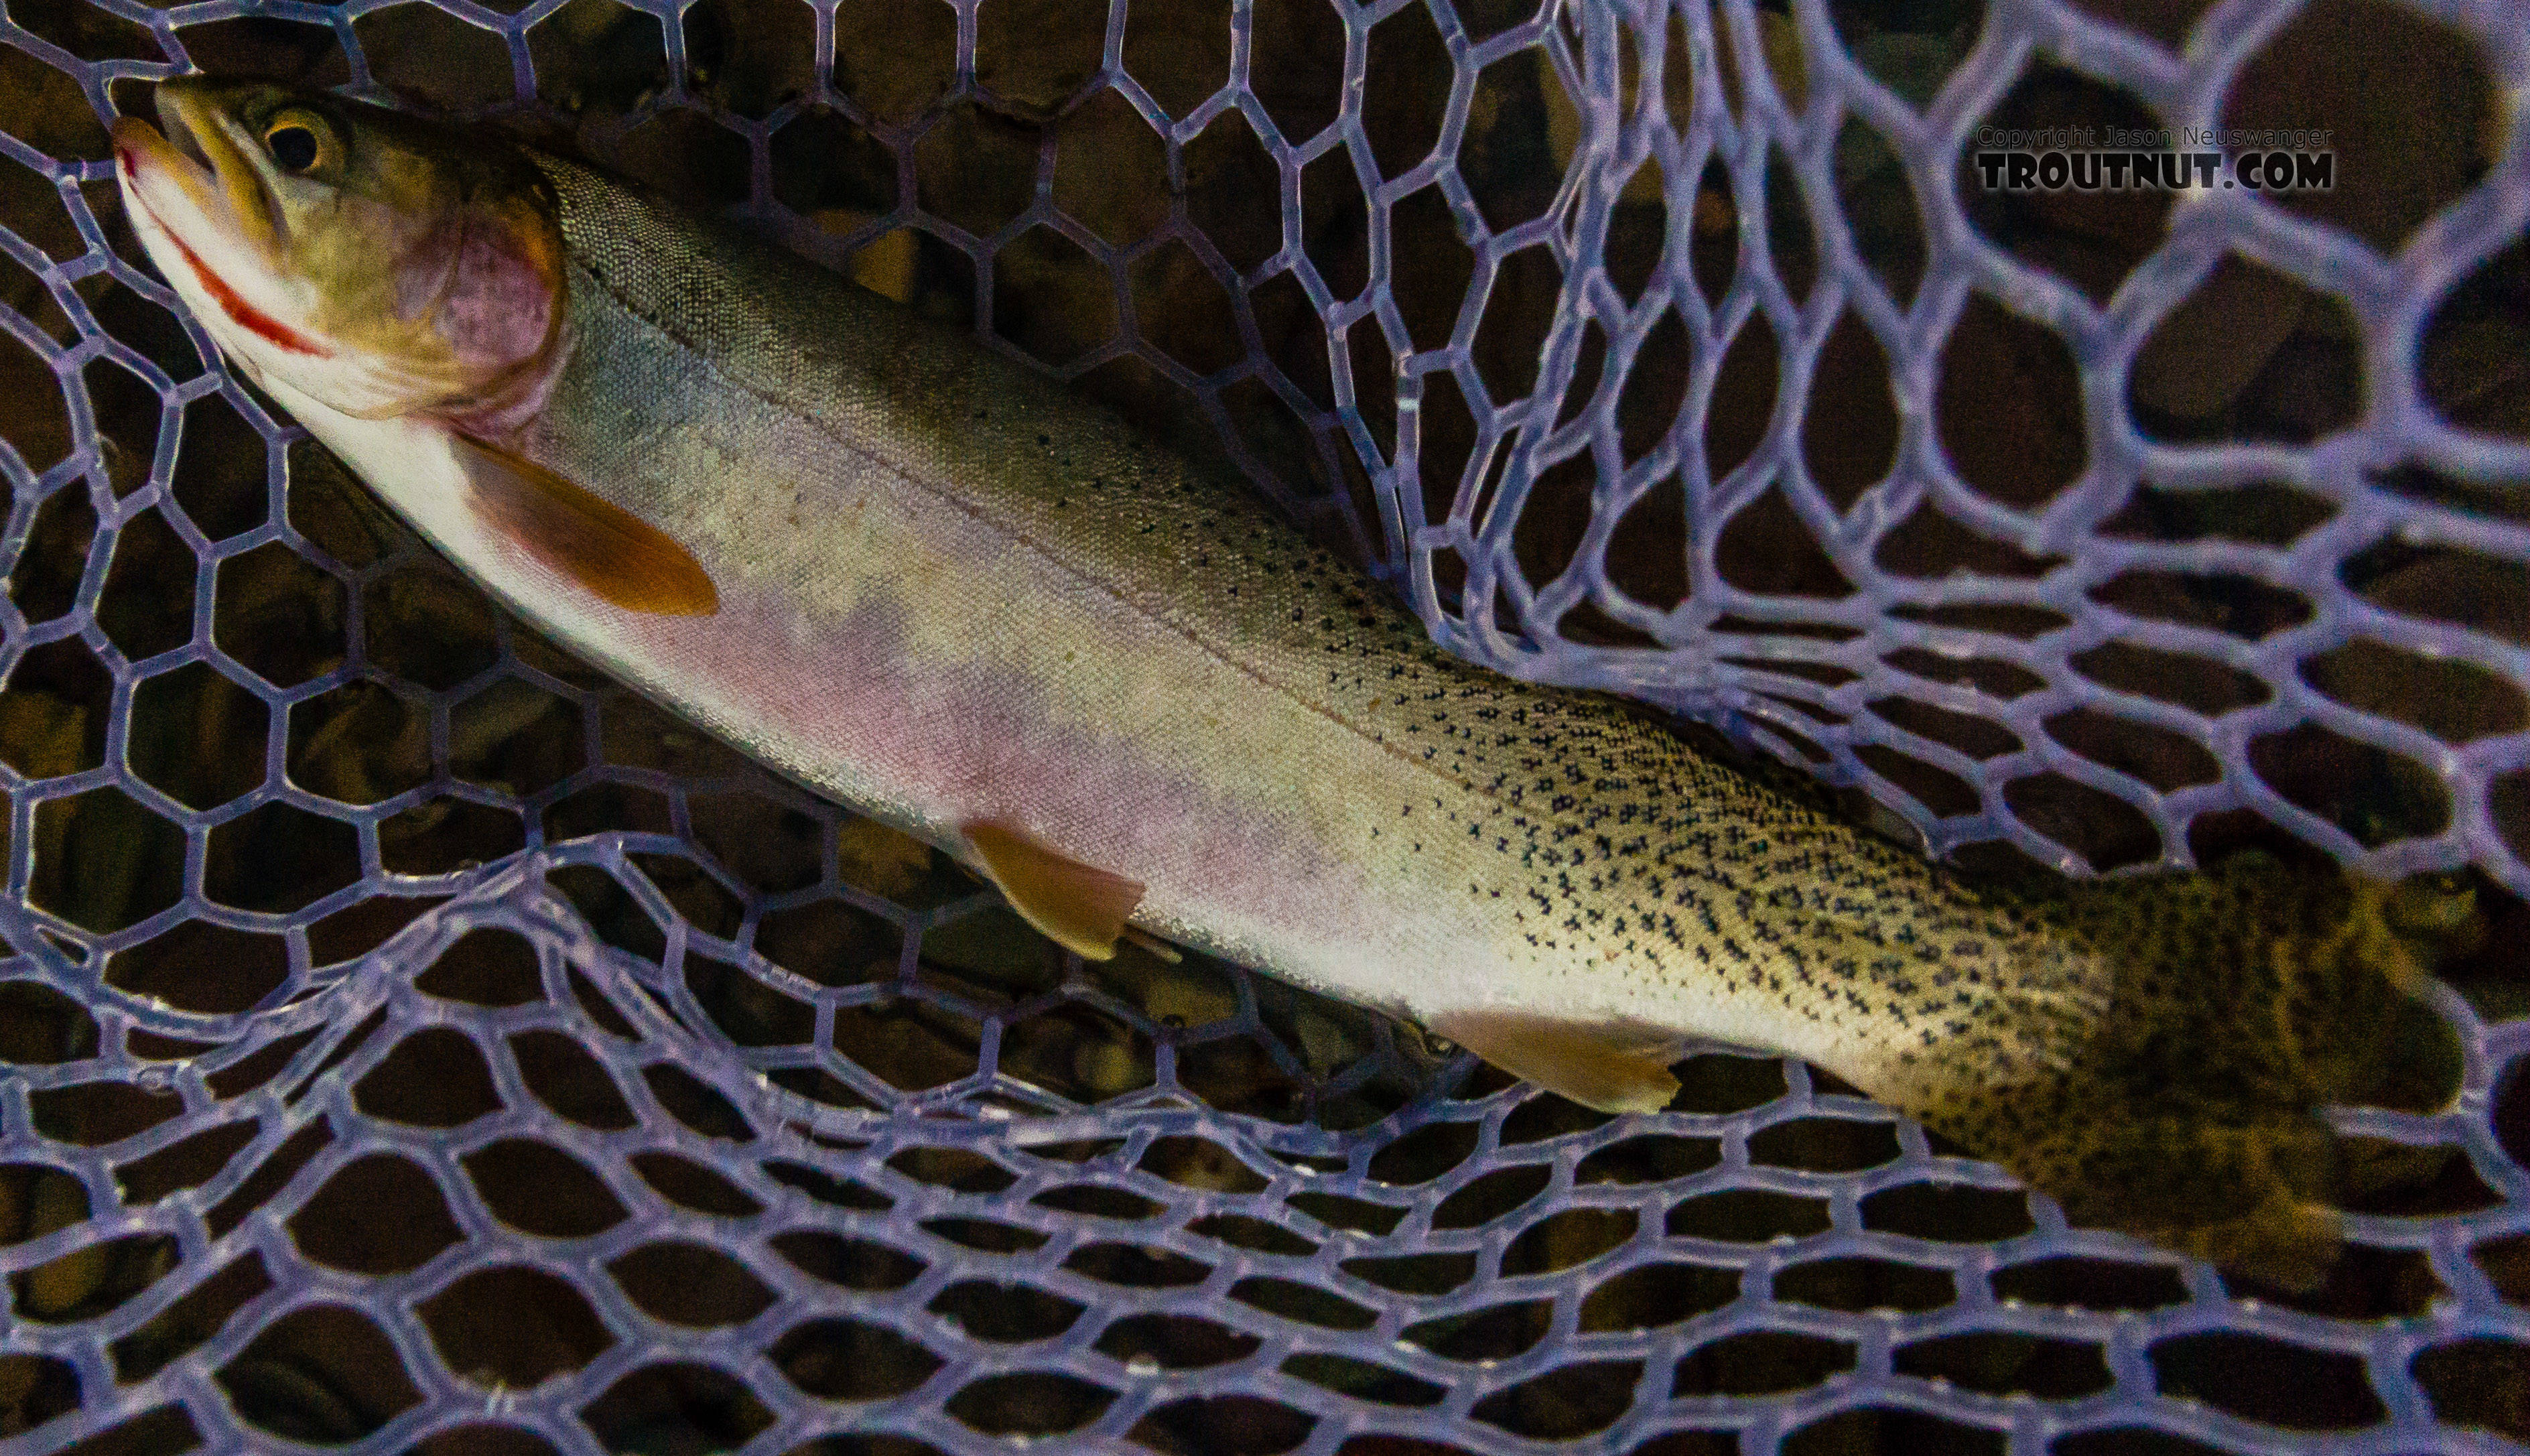 This 14-incher was, at the time, my biggest cutthroat trout (until the next day). From the North Fork Couer d'Alene River in Idaho.